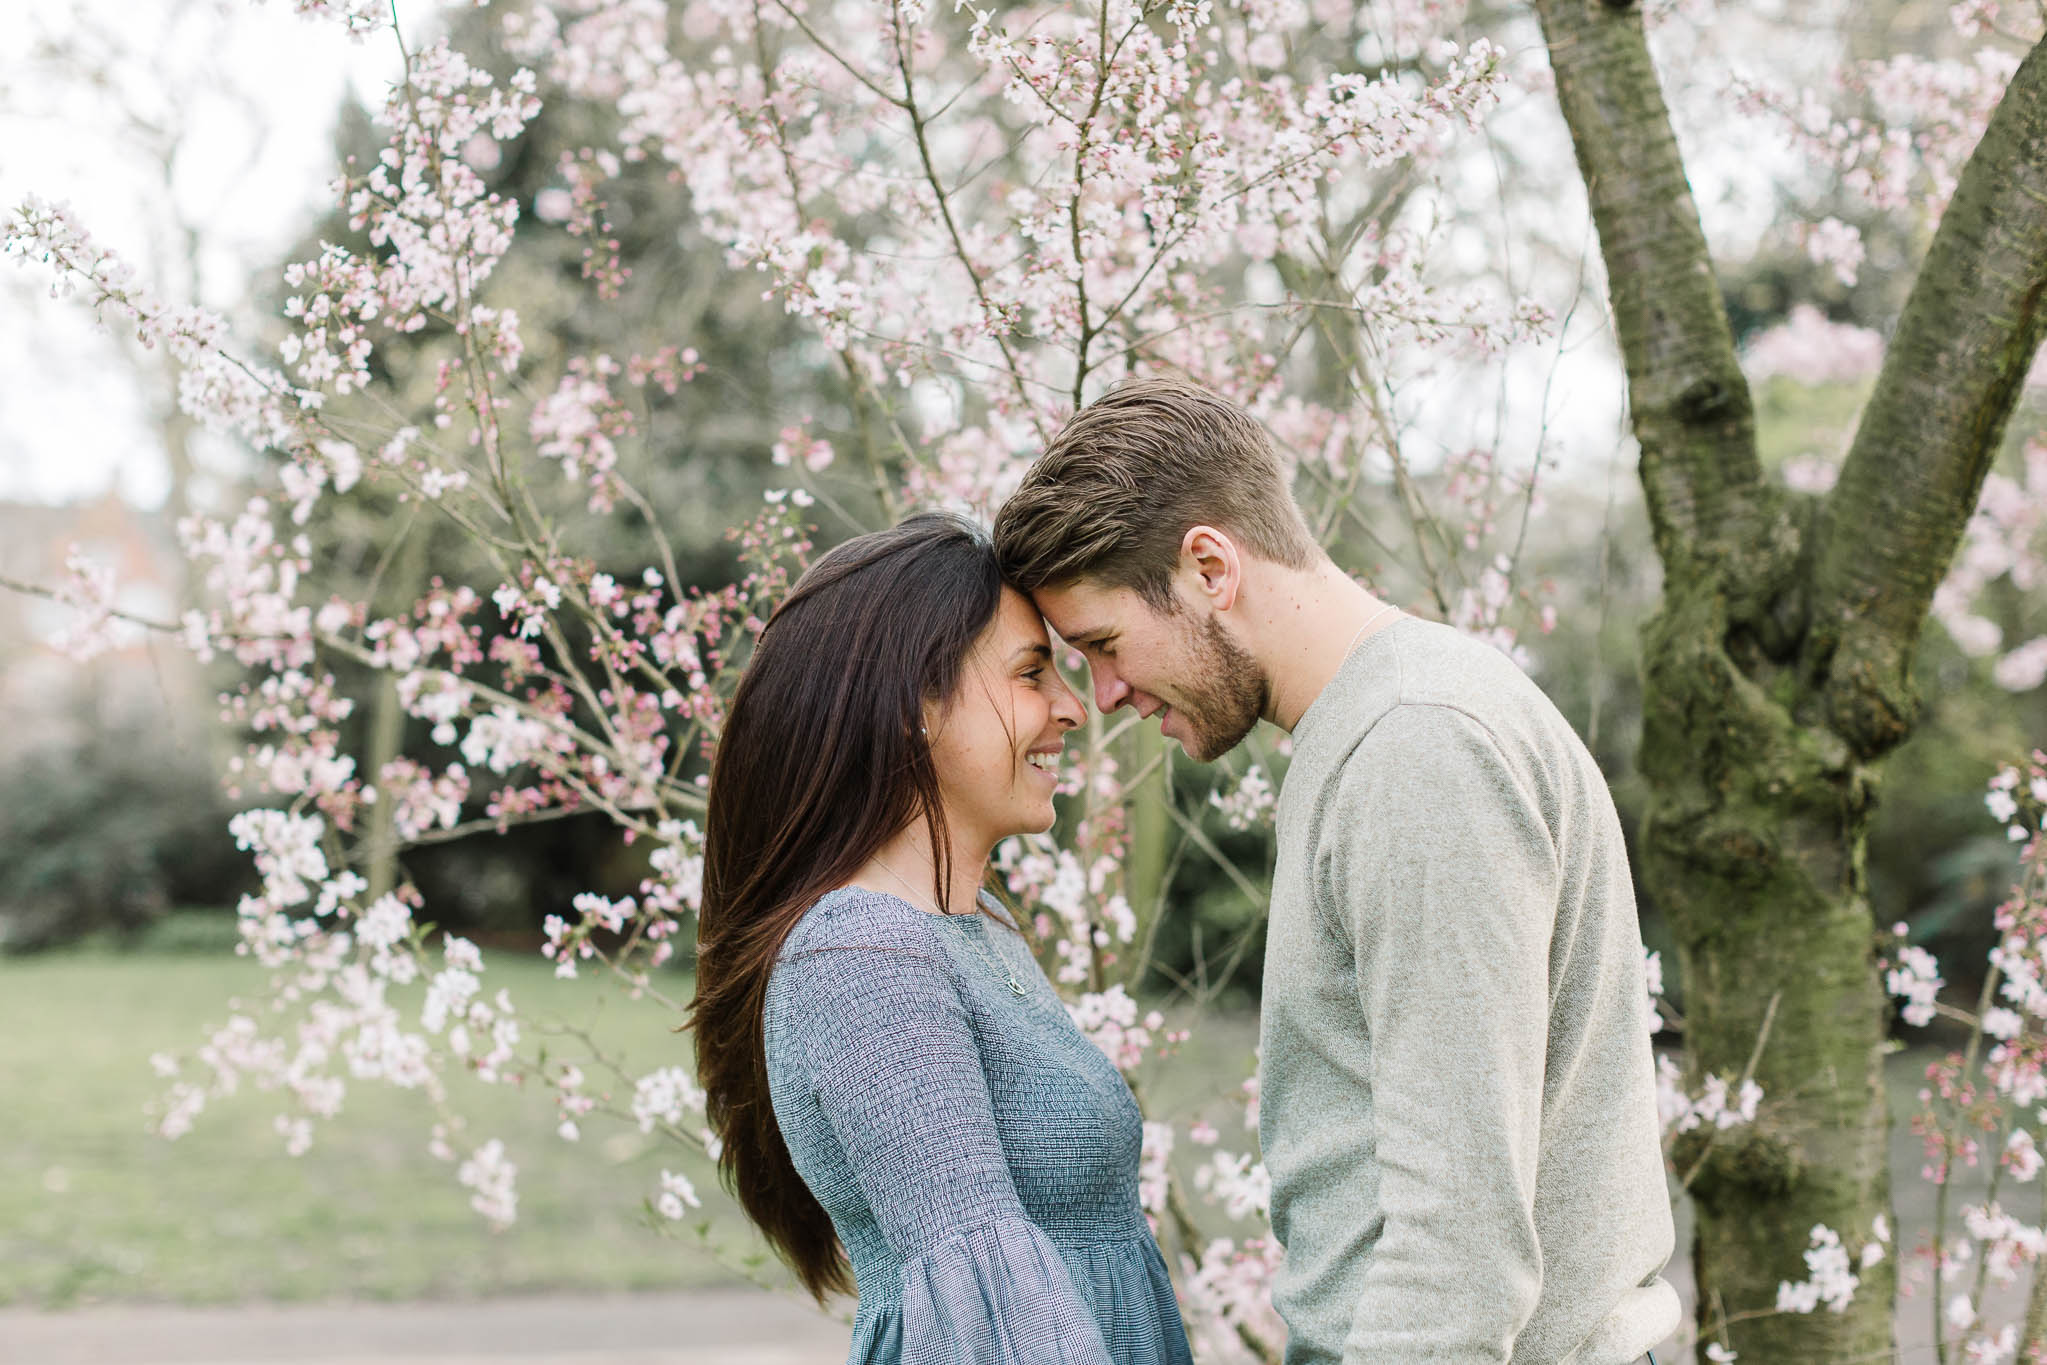 Spring pre-wedding photo shoot with pink blossom